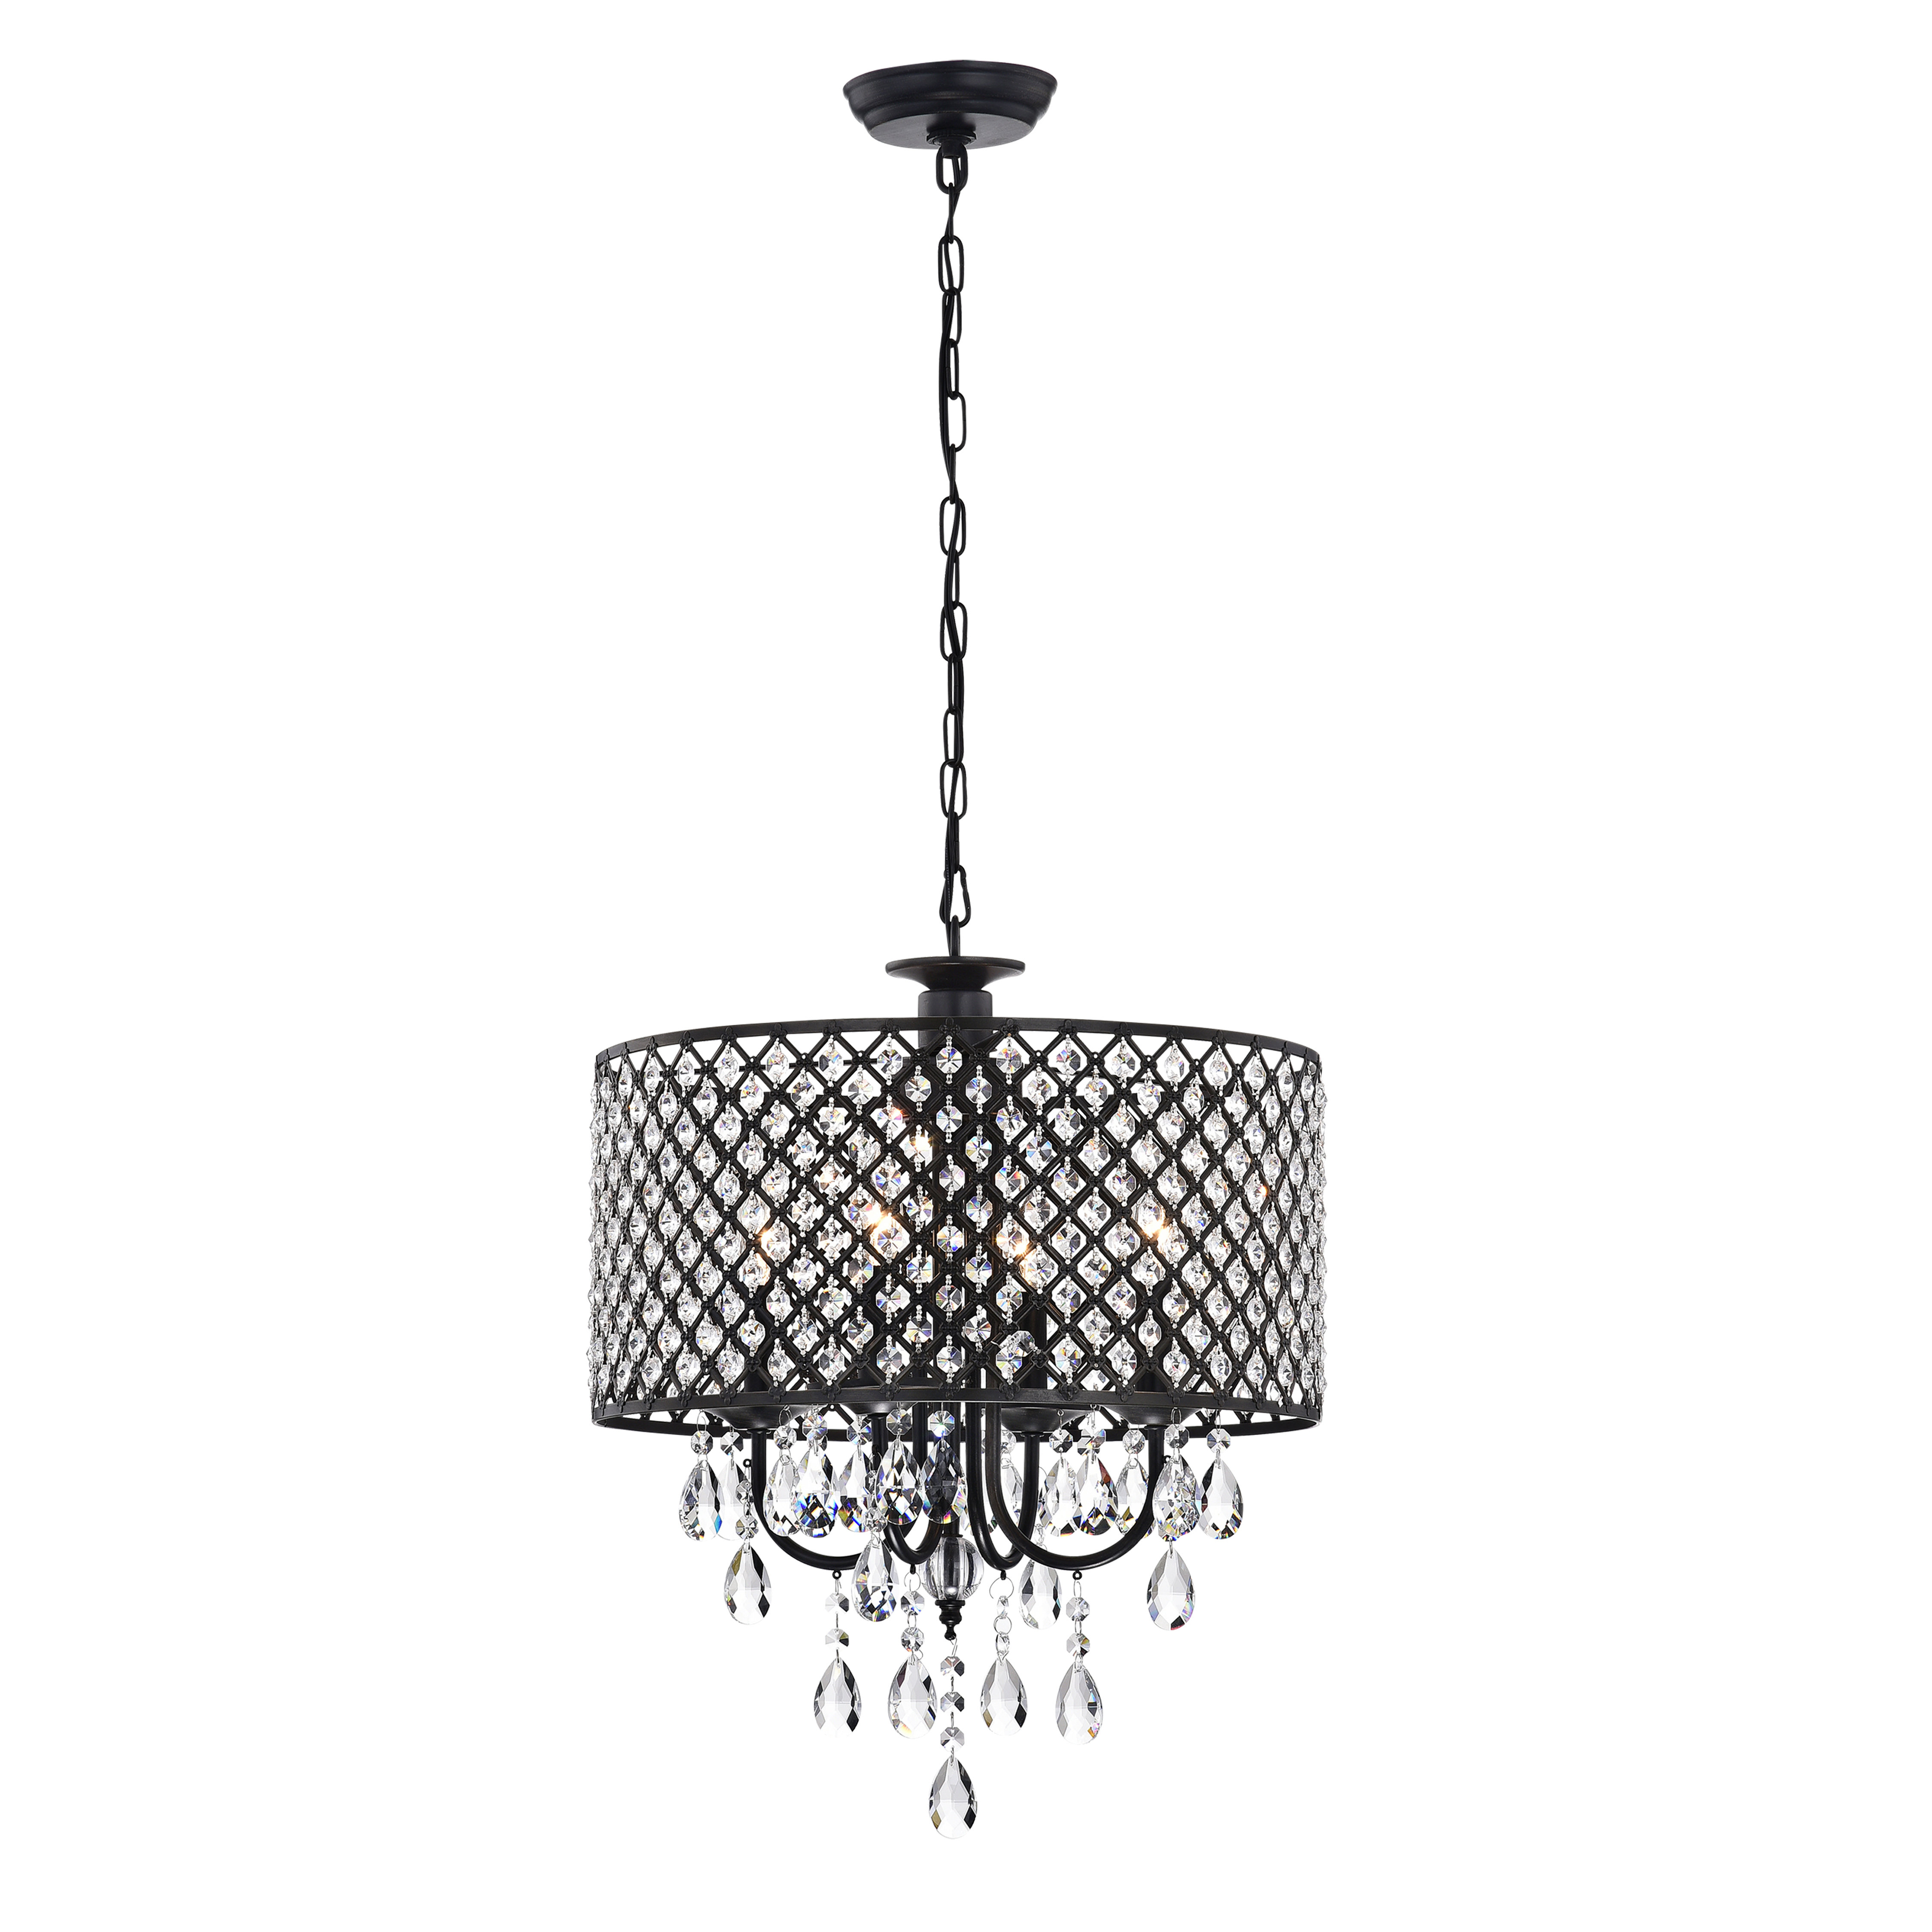 Gisselle 4 Light Drum Chandeliers In Current Willa Arlo Interiors Gisselle 4 Light Drum Chandelier (Gallery 3 of 20)